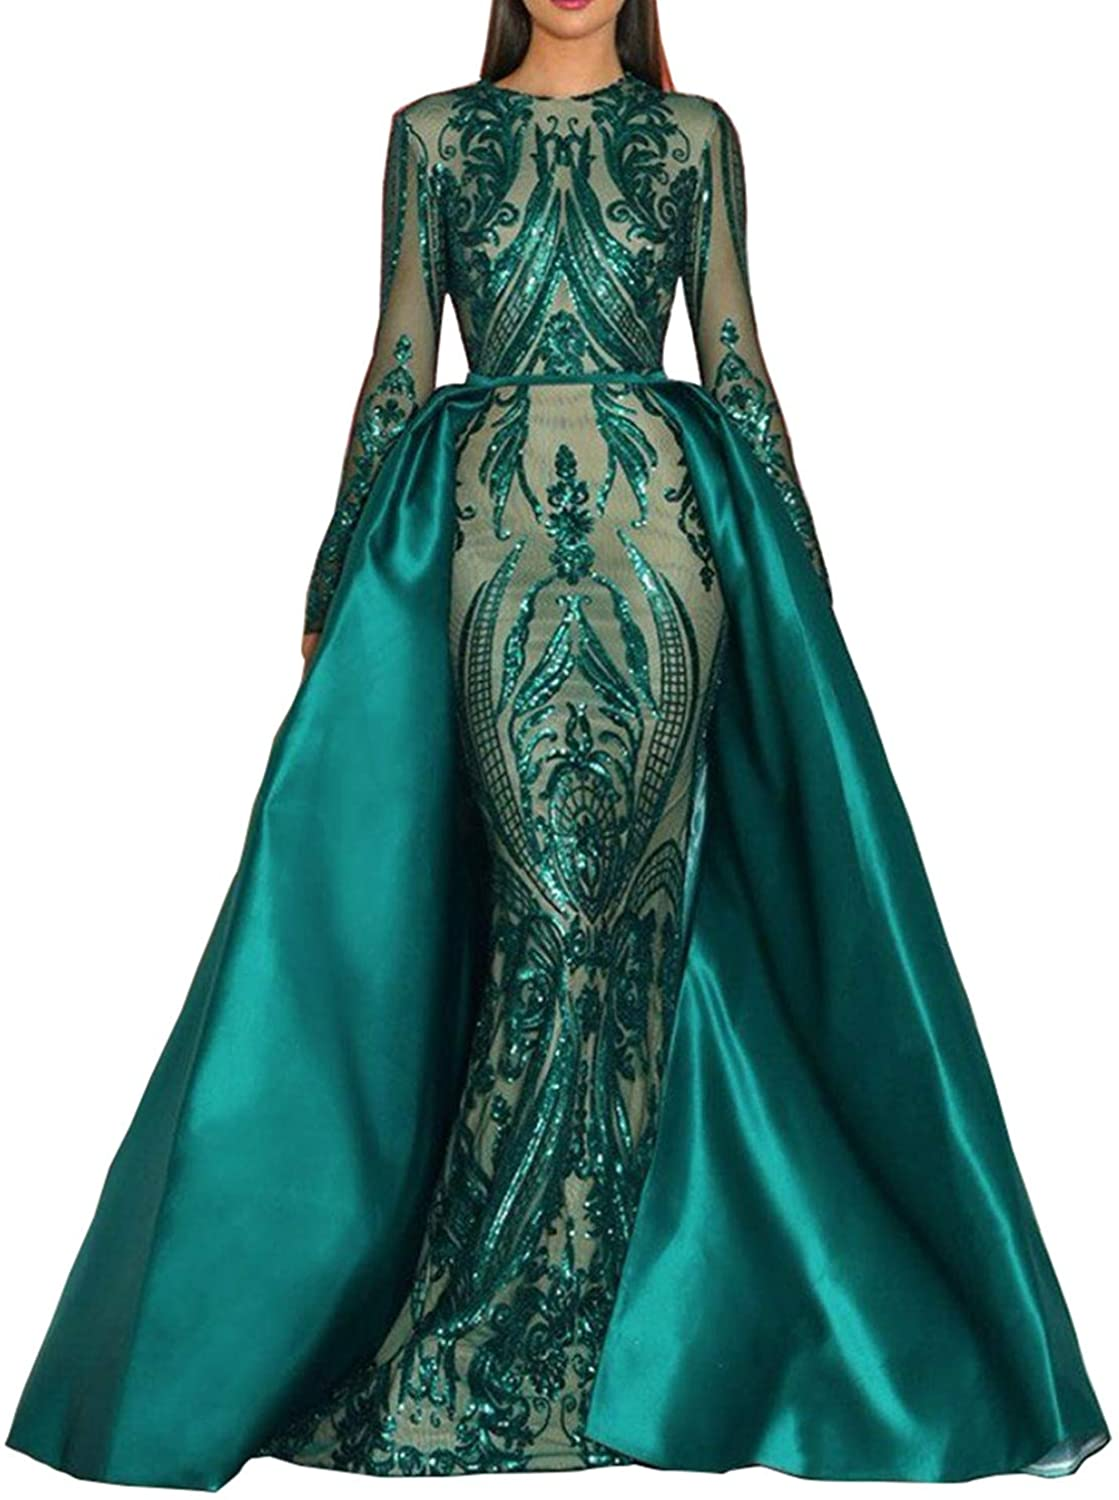 Aries Tuttle Green/Burgundy/Navy Blue Satin Mermaid Prom Evening Party Dress Gown Detachable Train